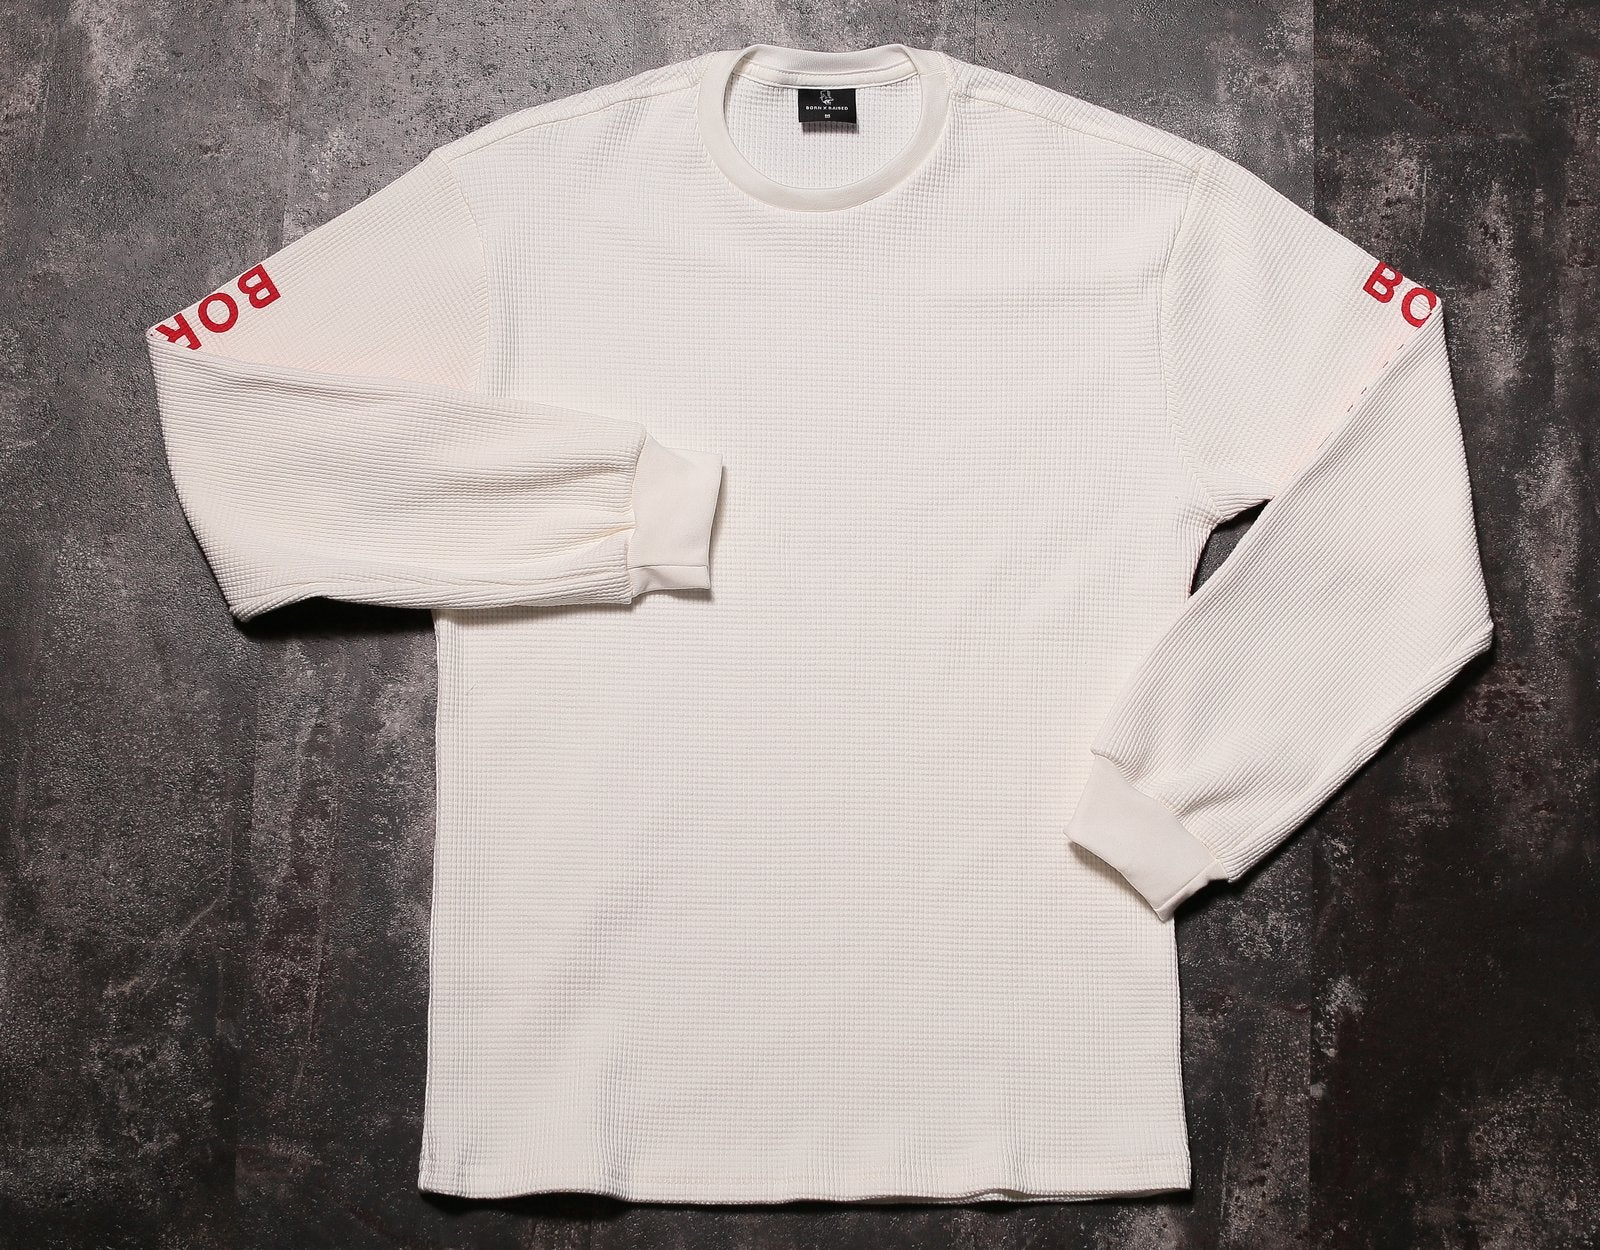 BORN x RAISED TURF TALK L/S CREW NK TEE